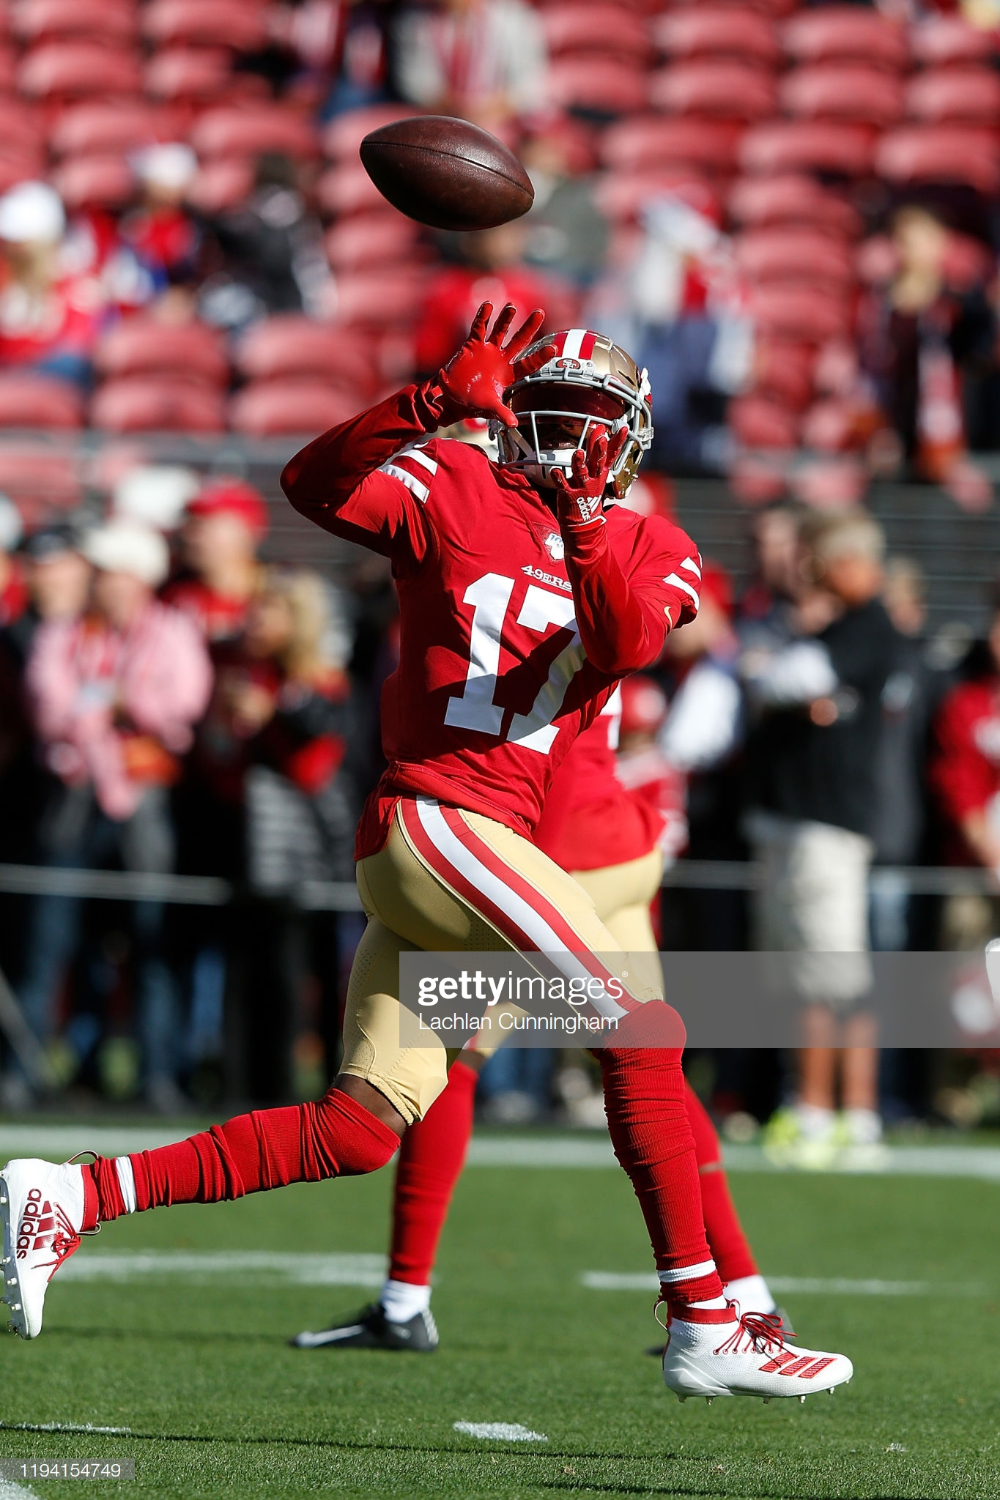 Emmanuel Sanders Of The San Francisco 49ers Warms Up Before The Game Nfl Football 49ers Emmanuel Sanders San Francisco 49ers